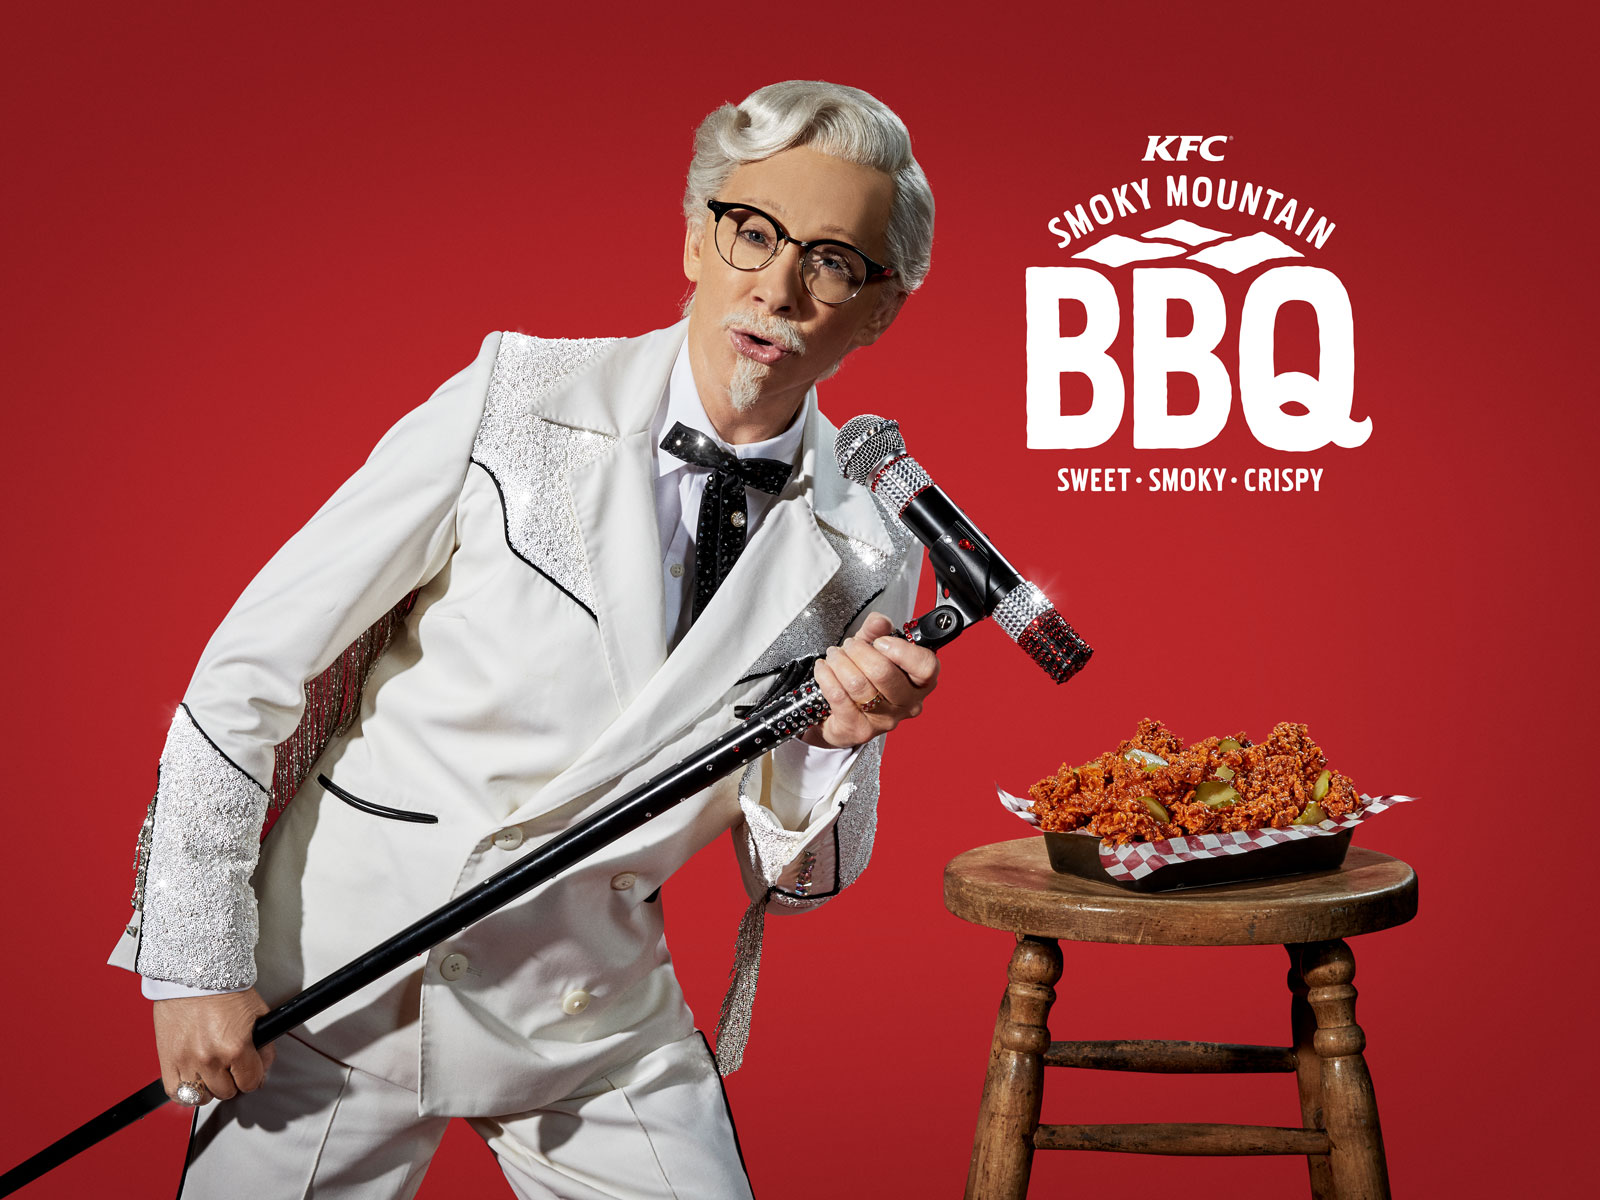 Reba McEntire as Colonel Sanders